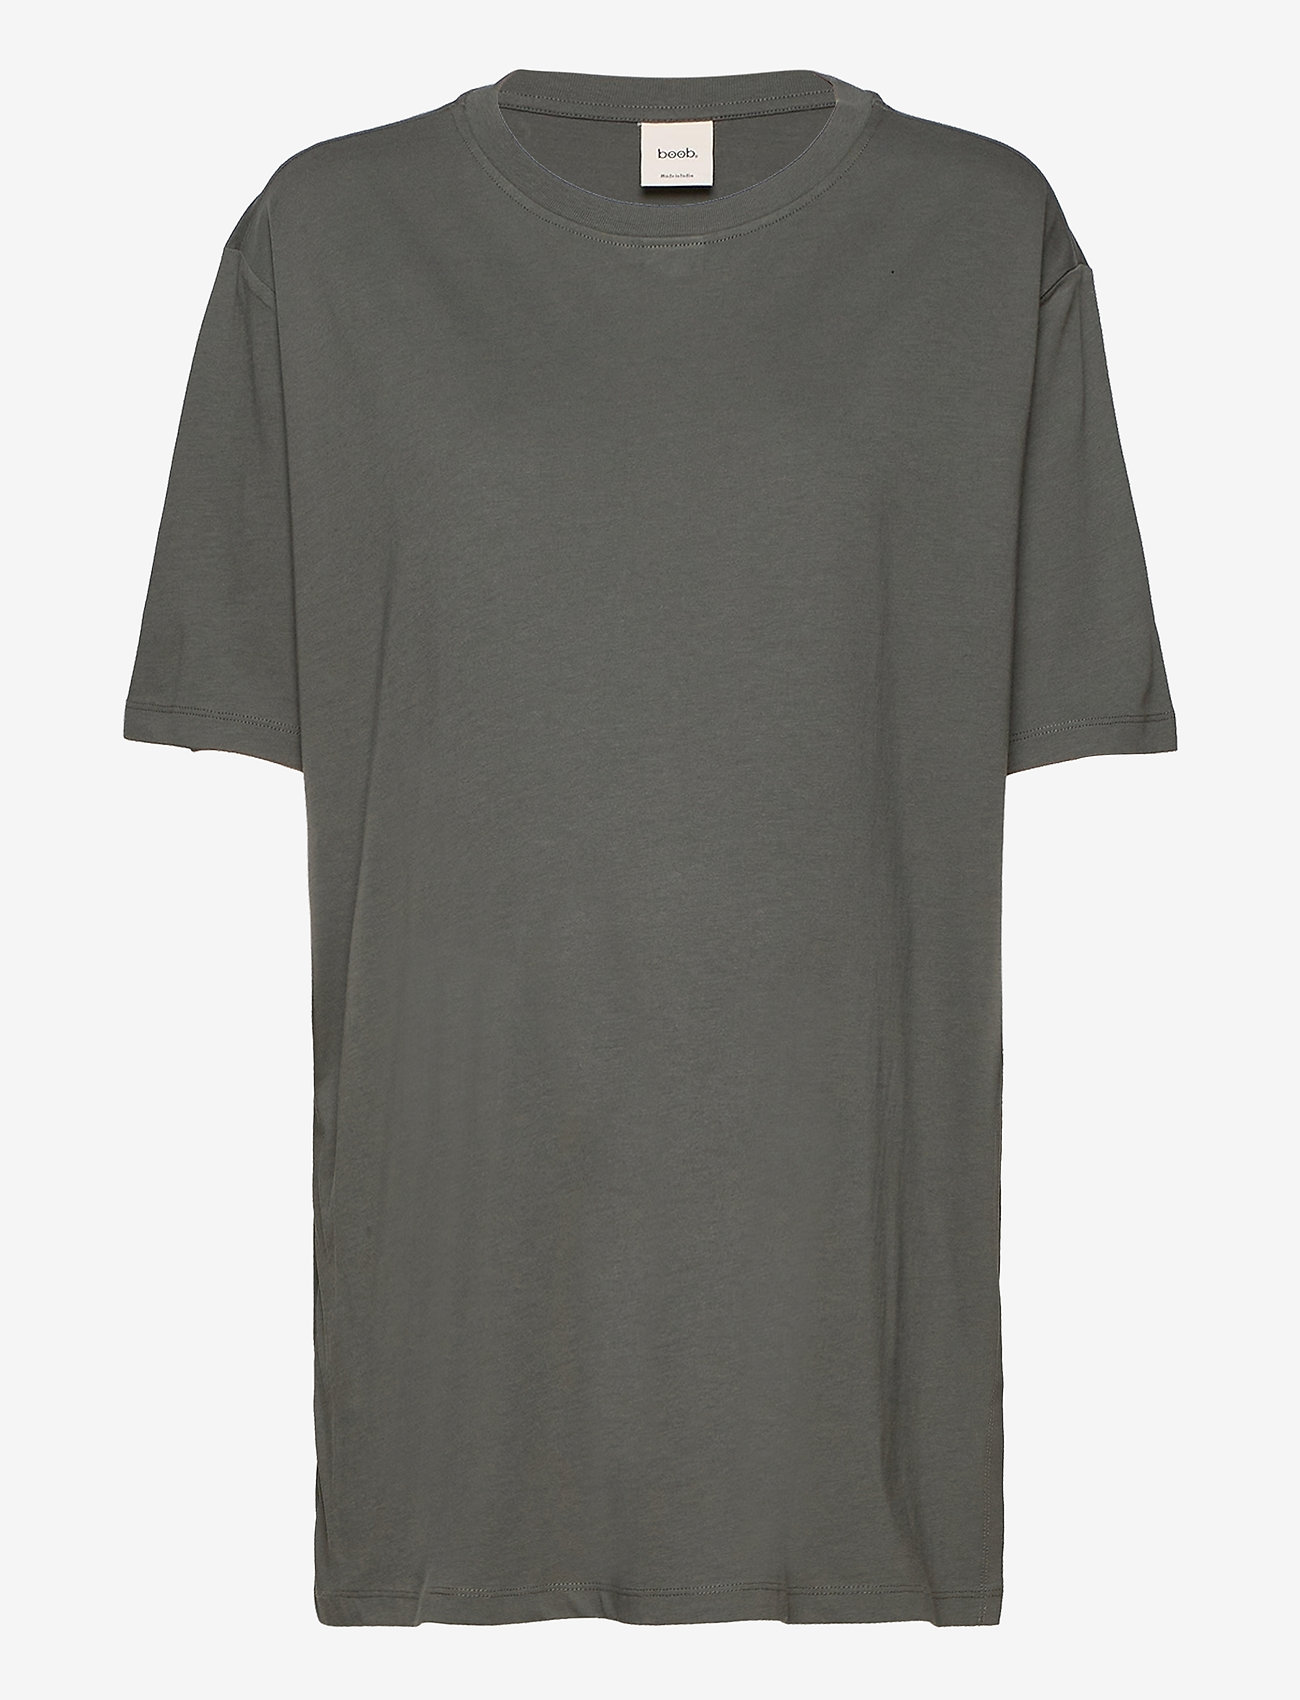 Boob - The-shirt oversized - t-shirts - willow green - 0